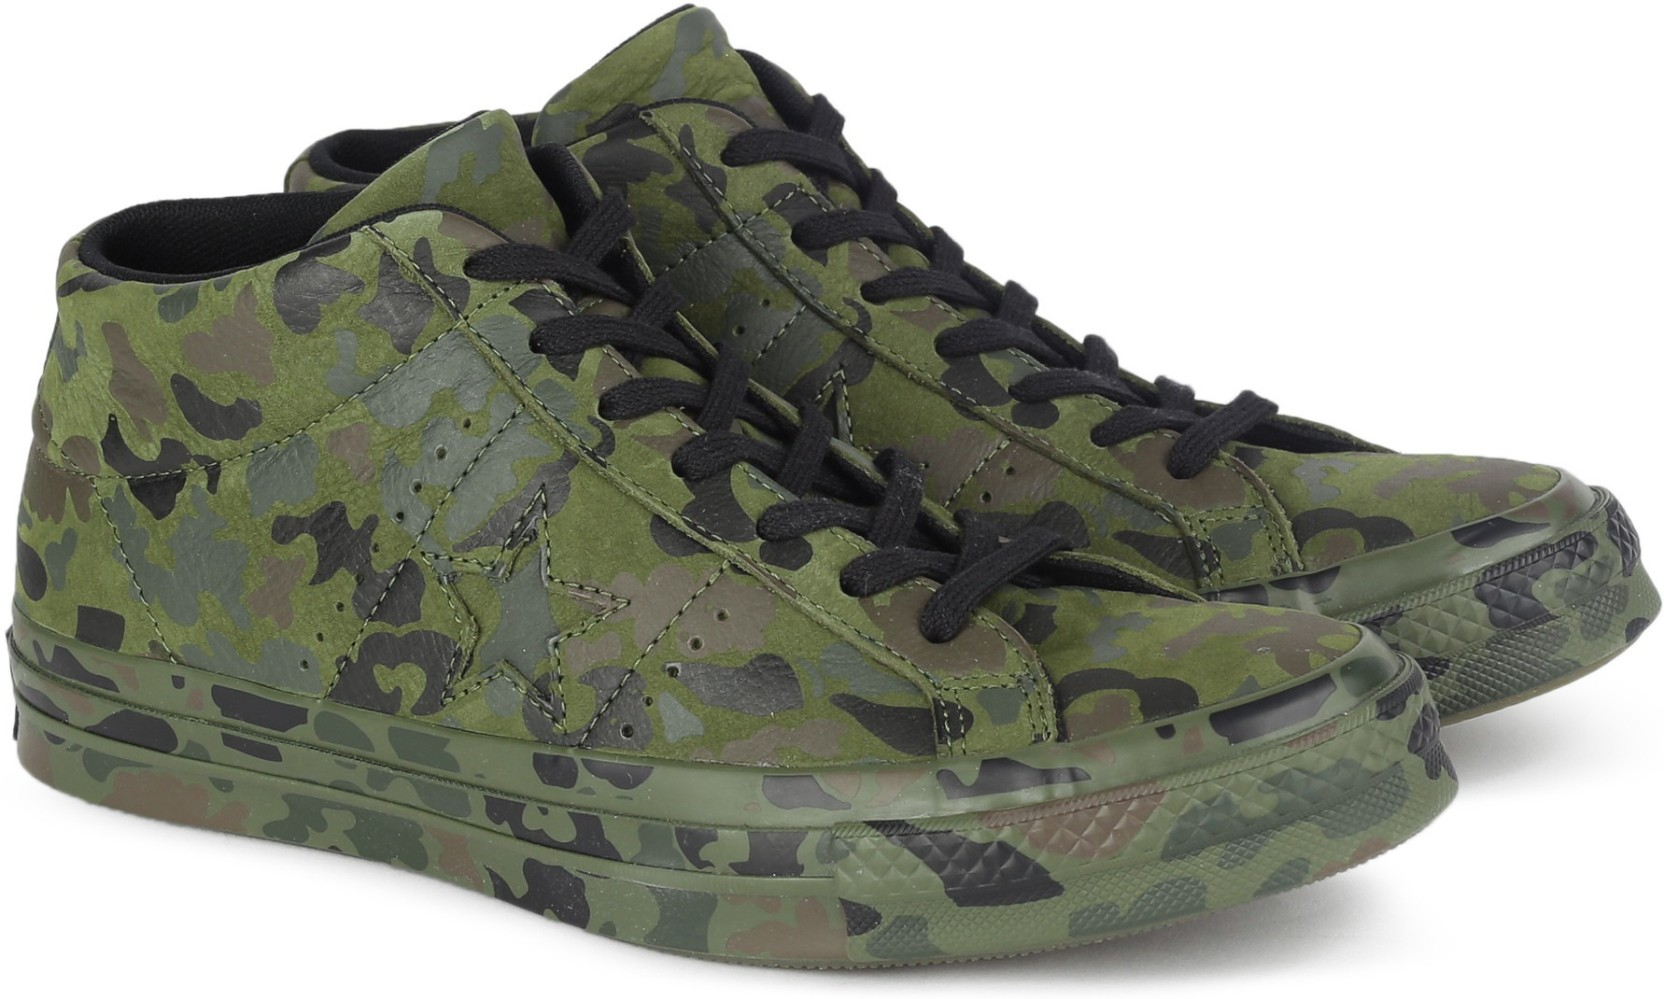 f8e4dd54d7 Converse One Star Camo Mid Sneakers For Men - Buy HERBAL COLLARD ...